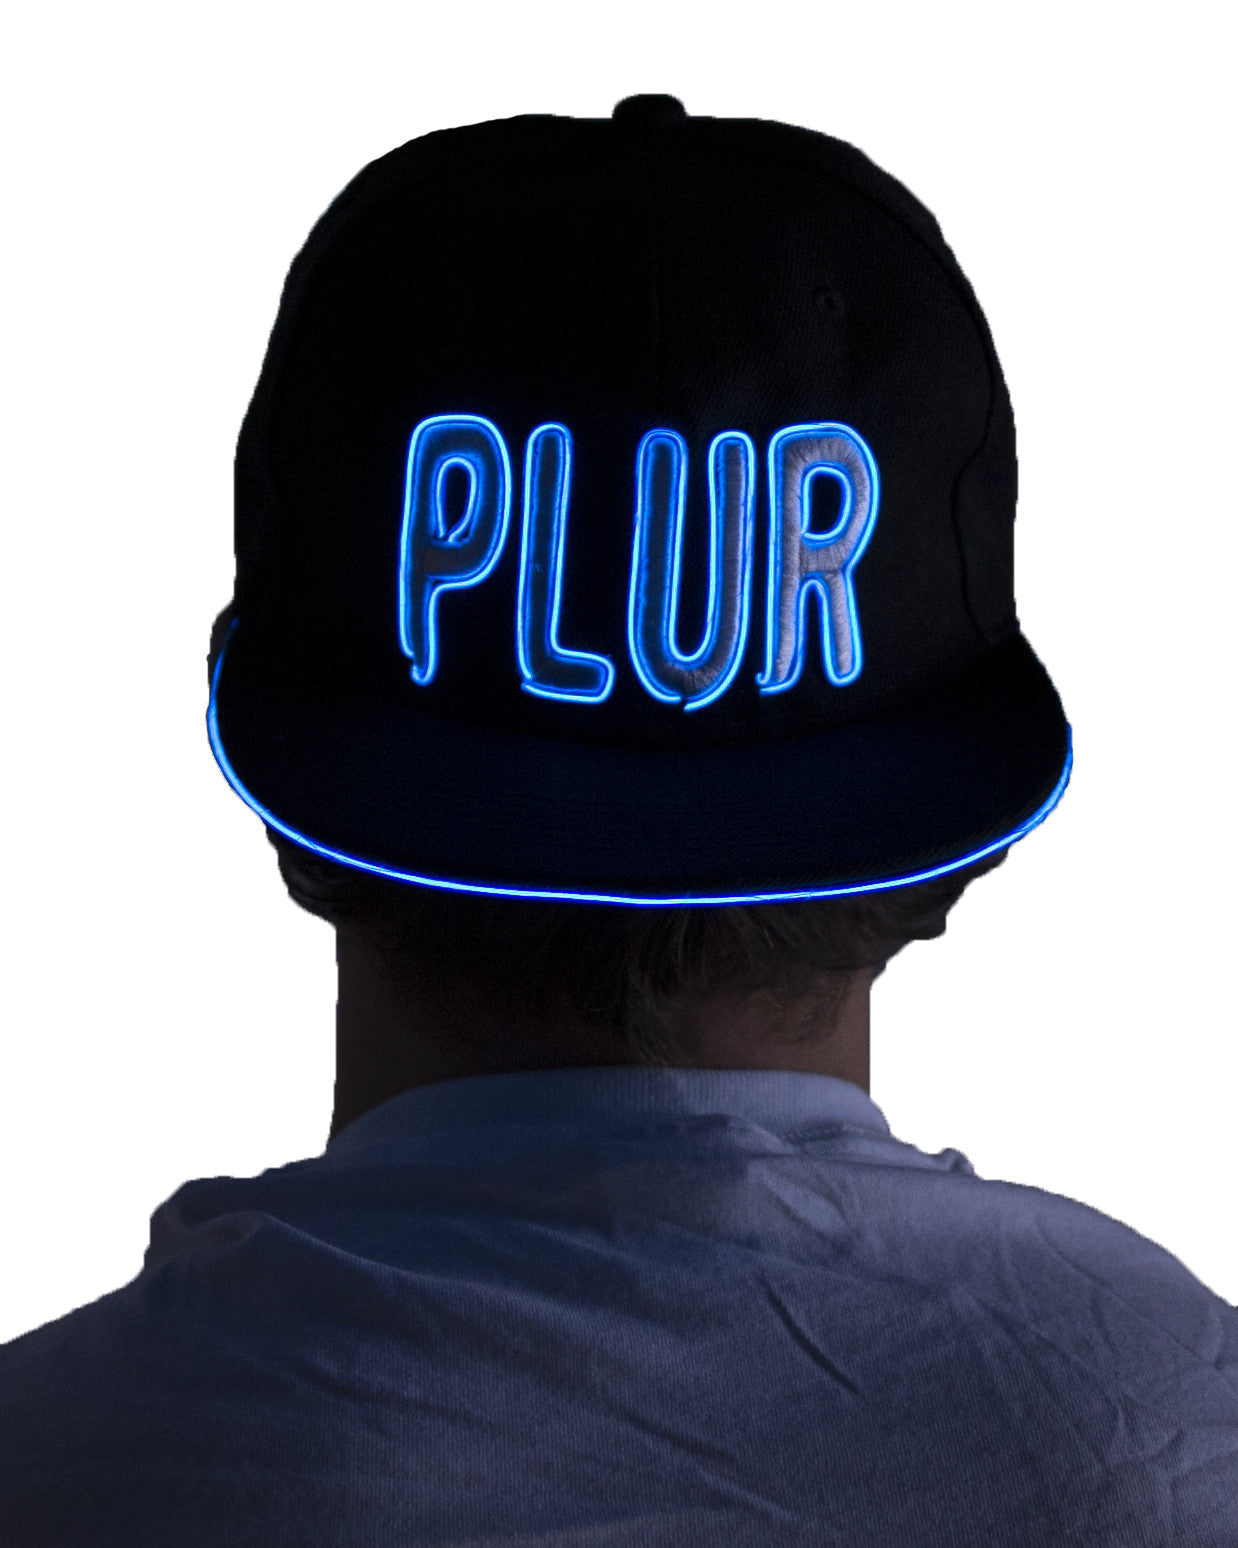 Women's Light Up Hat - PLUR - Electric Styles | World's Number 1 Light Up Shoe Store - {product_type}} - Blue - 4